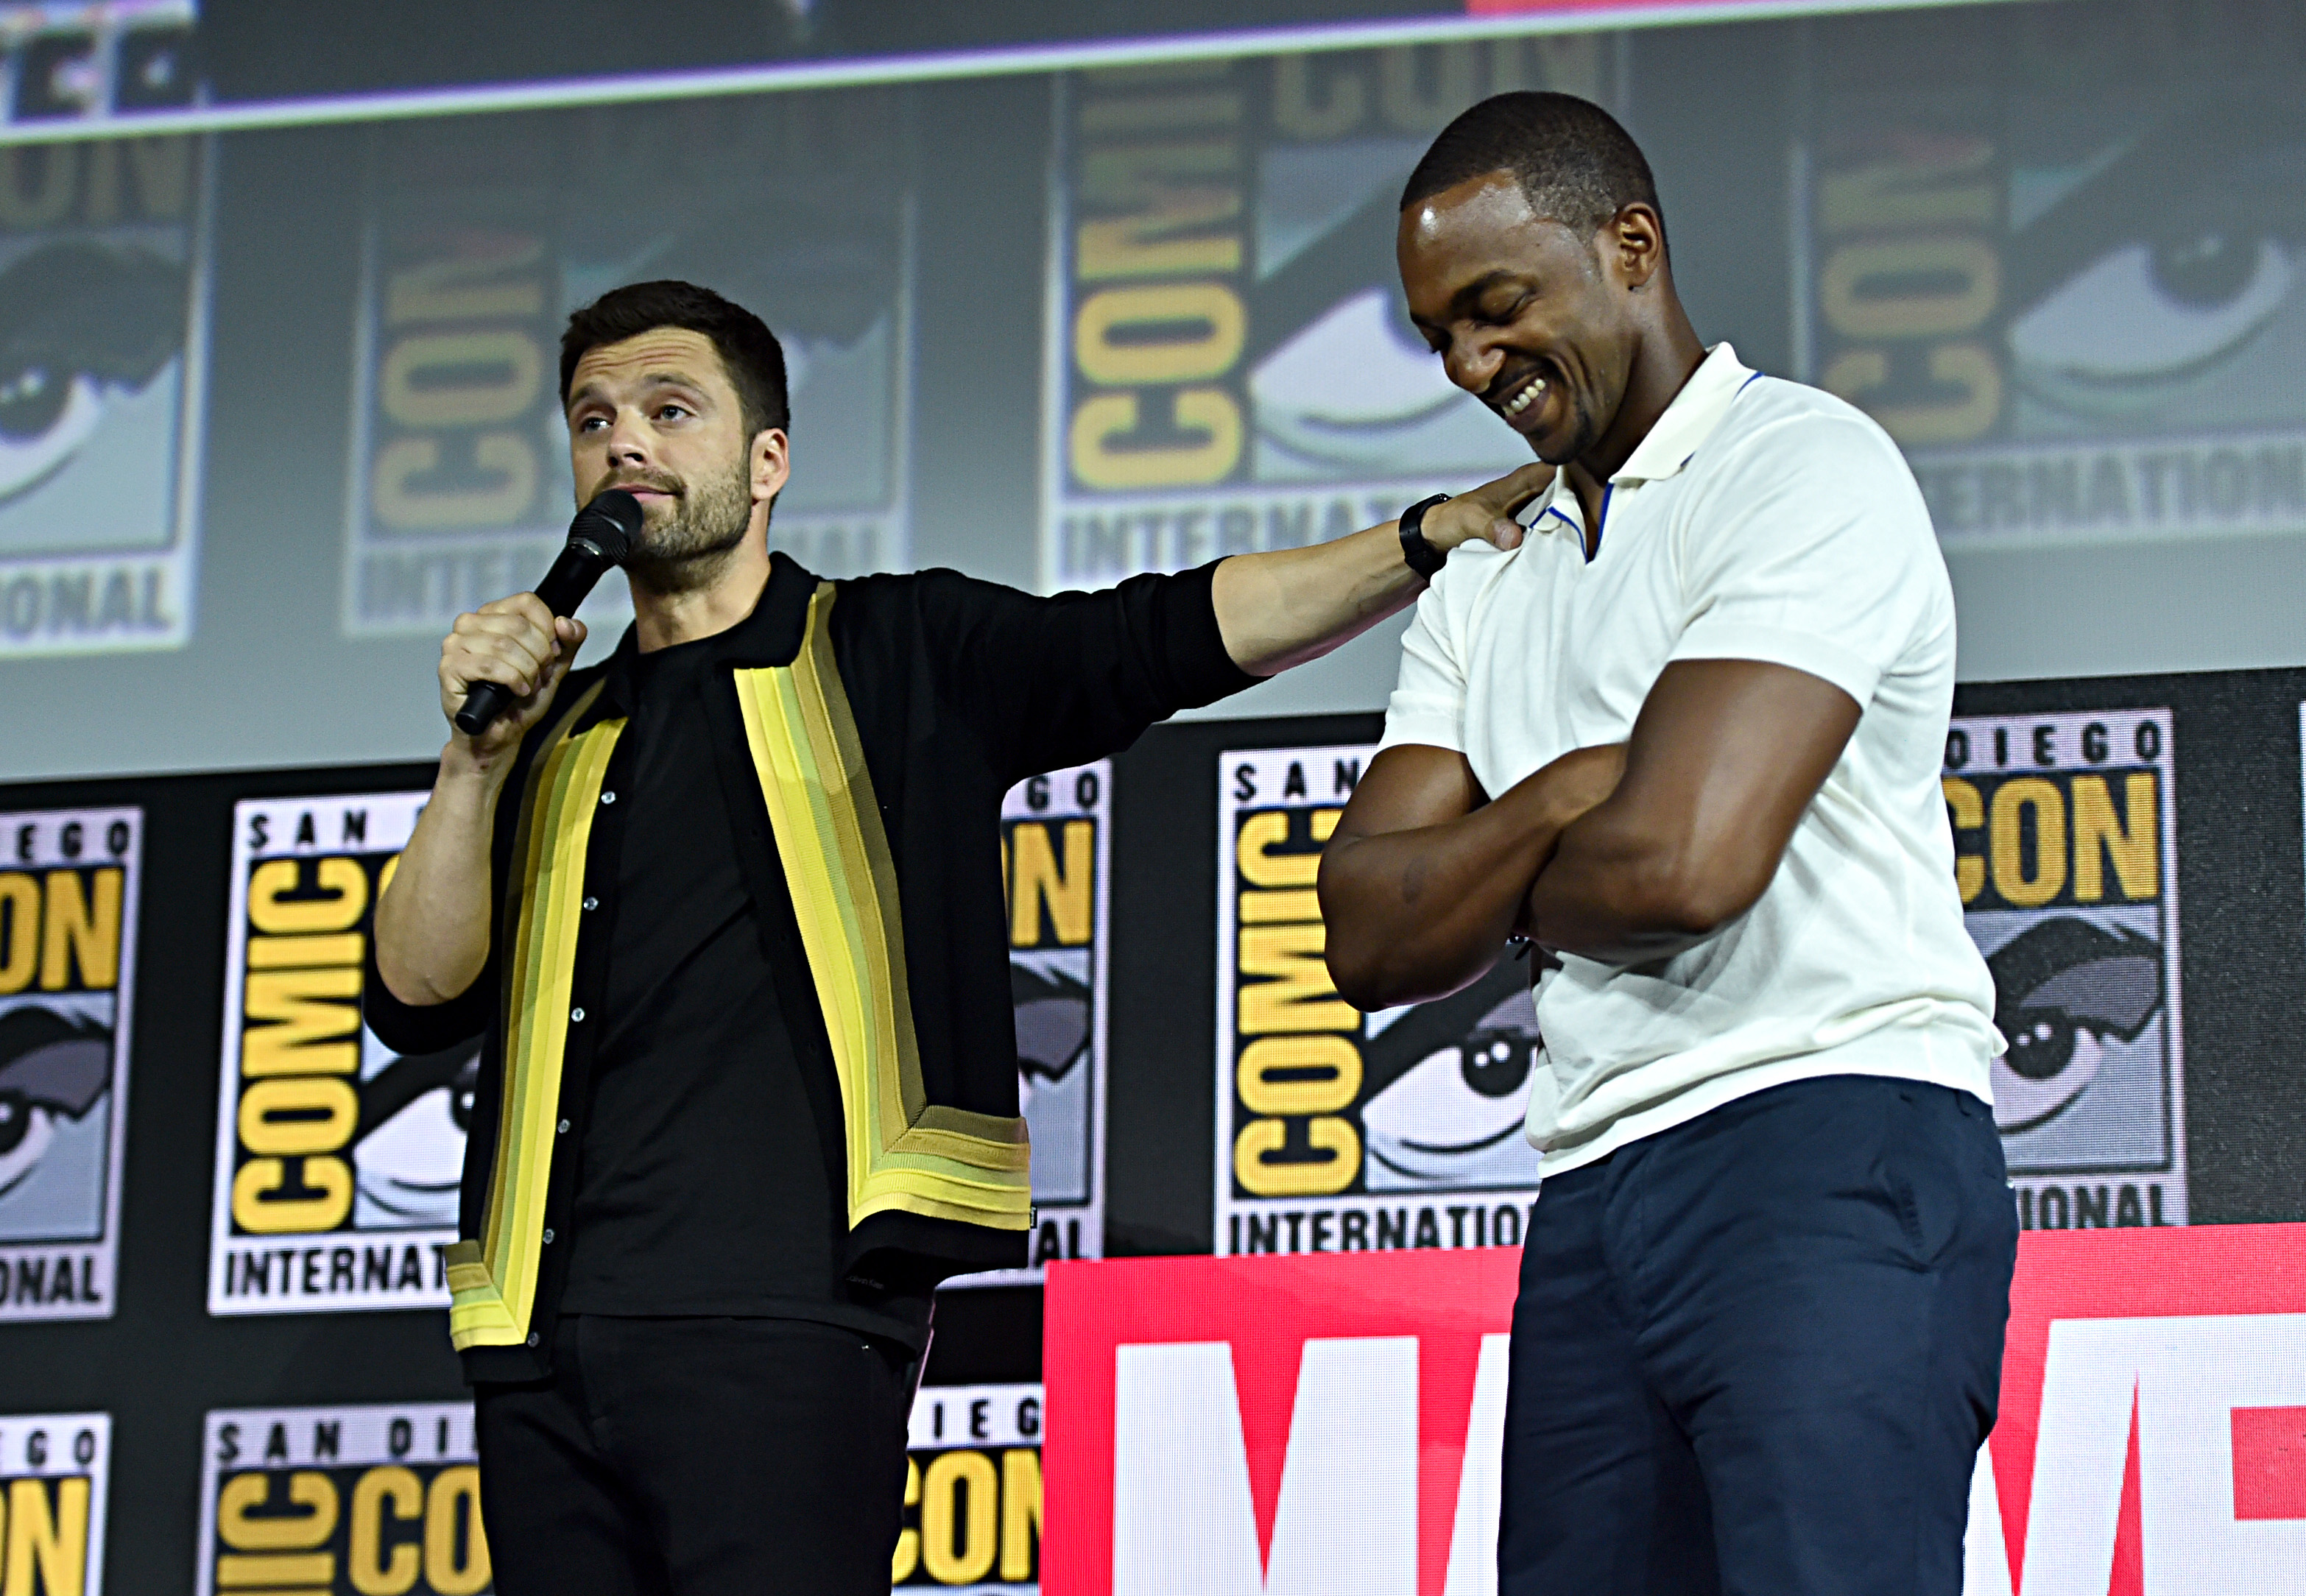 Falcon and the Winter Soldier - Sebastian Stan and Anthony Mackie